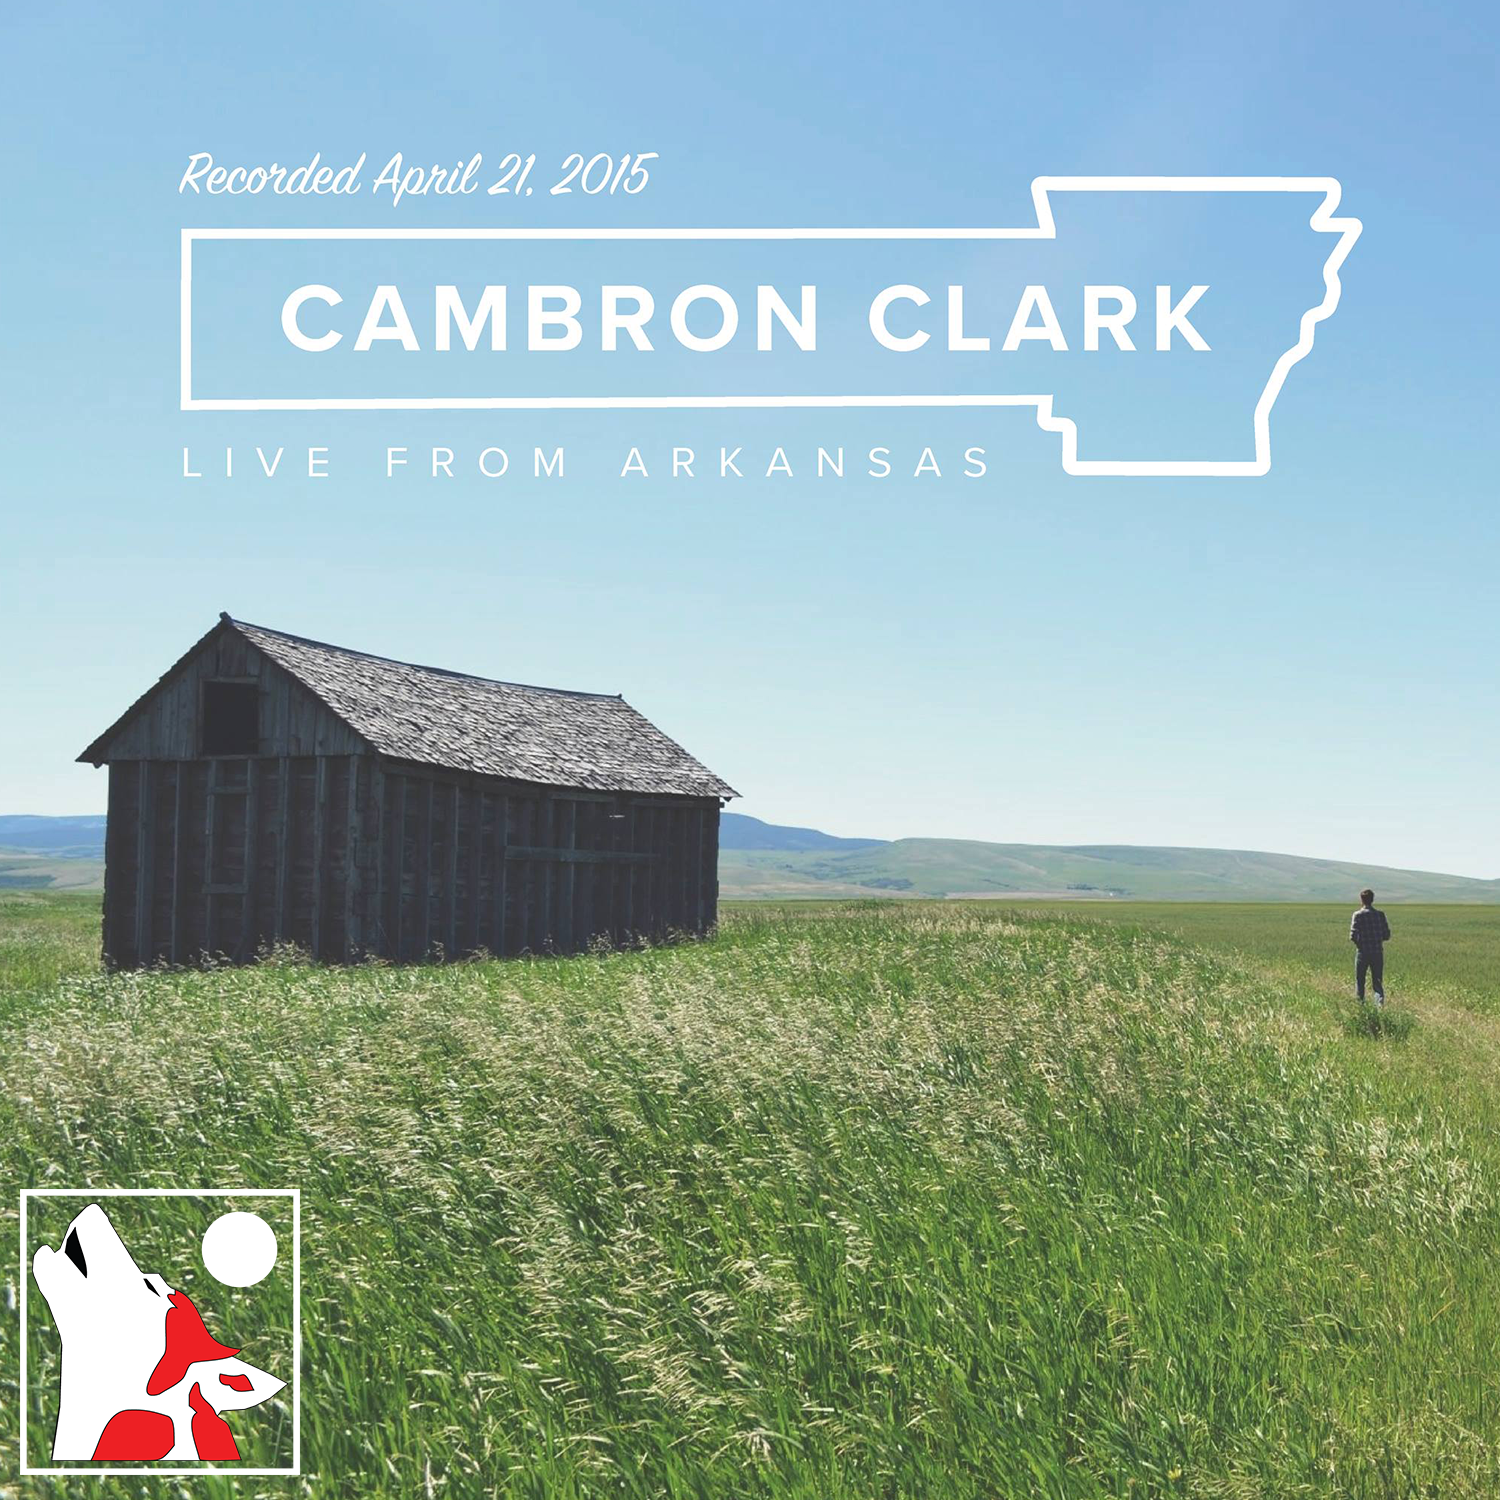 Live From Arkansas by Cambron Clark